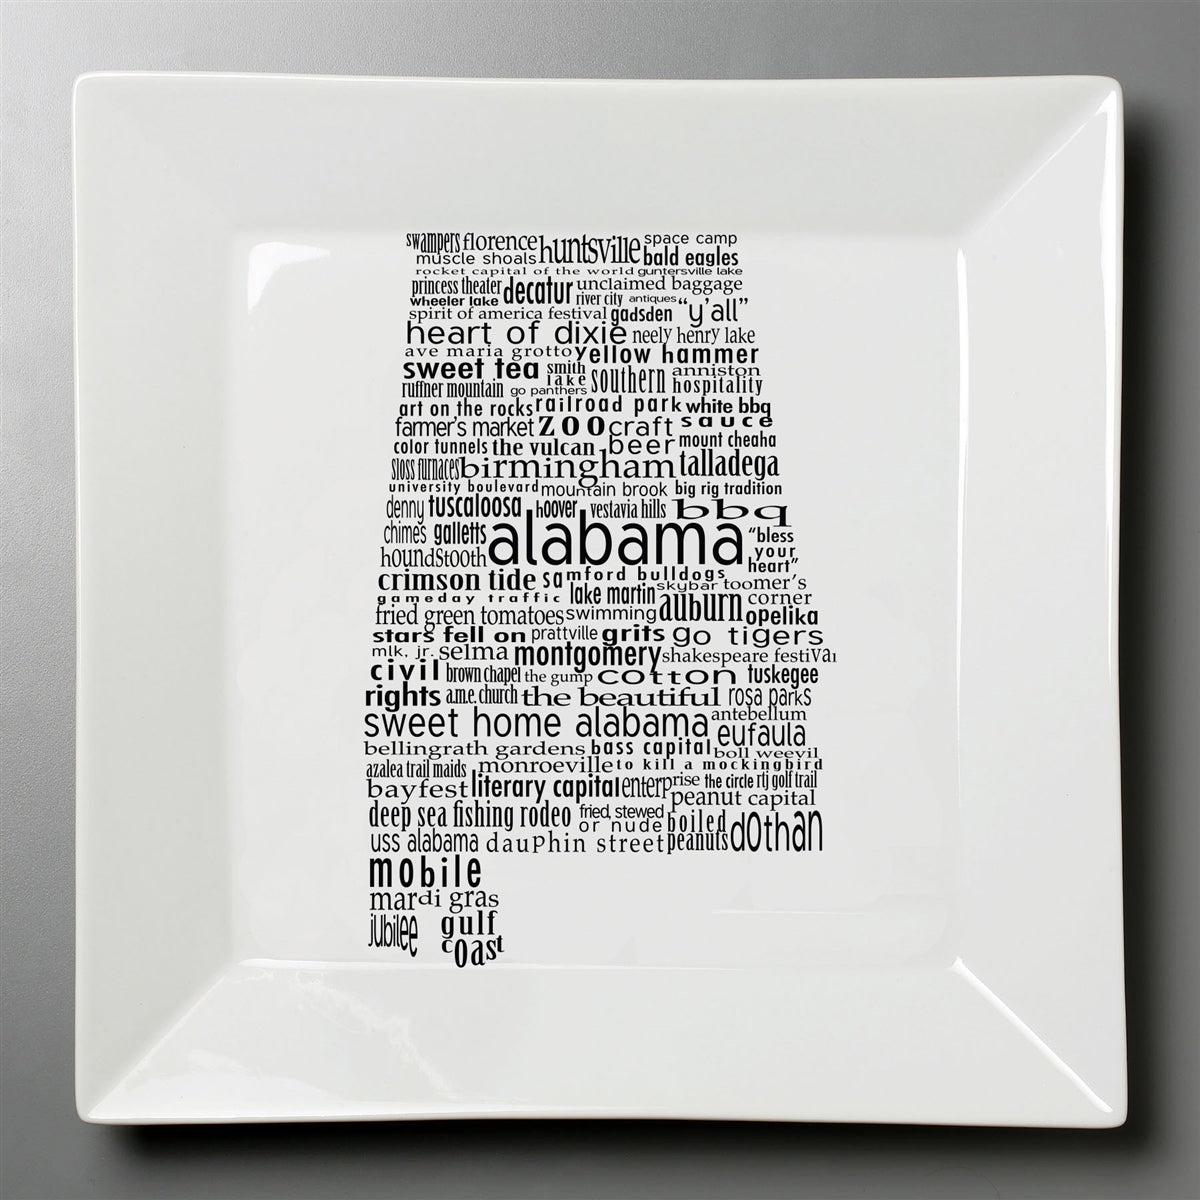 Alabama Dish - Small Square Plate